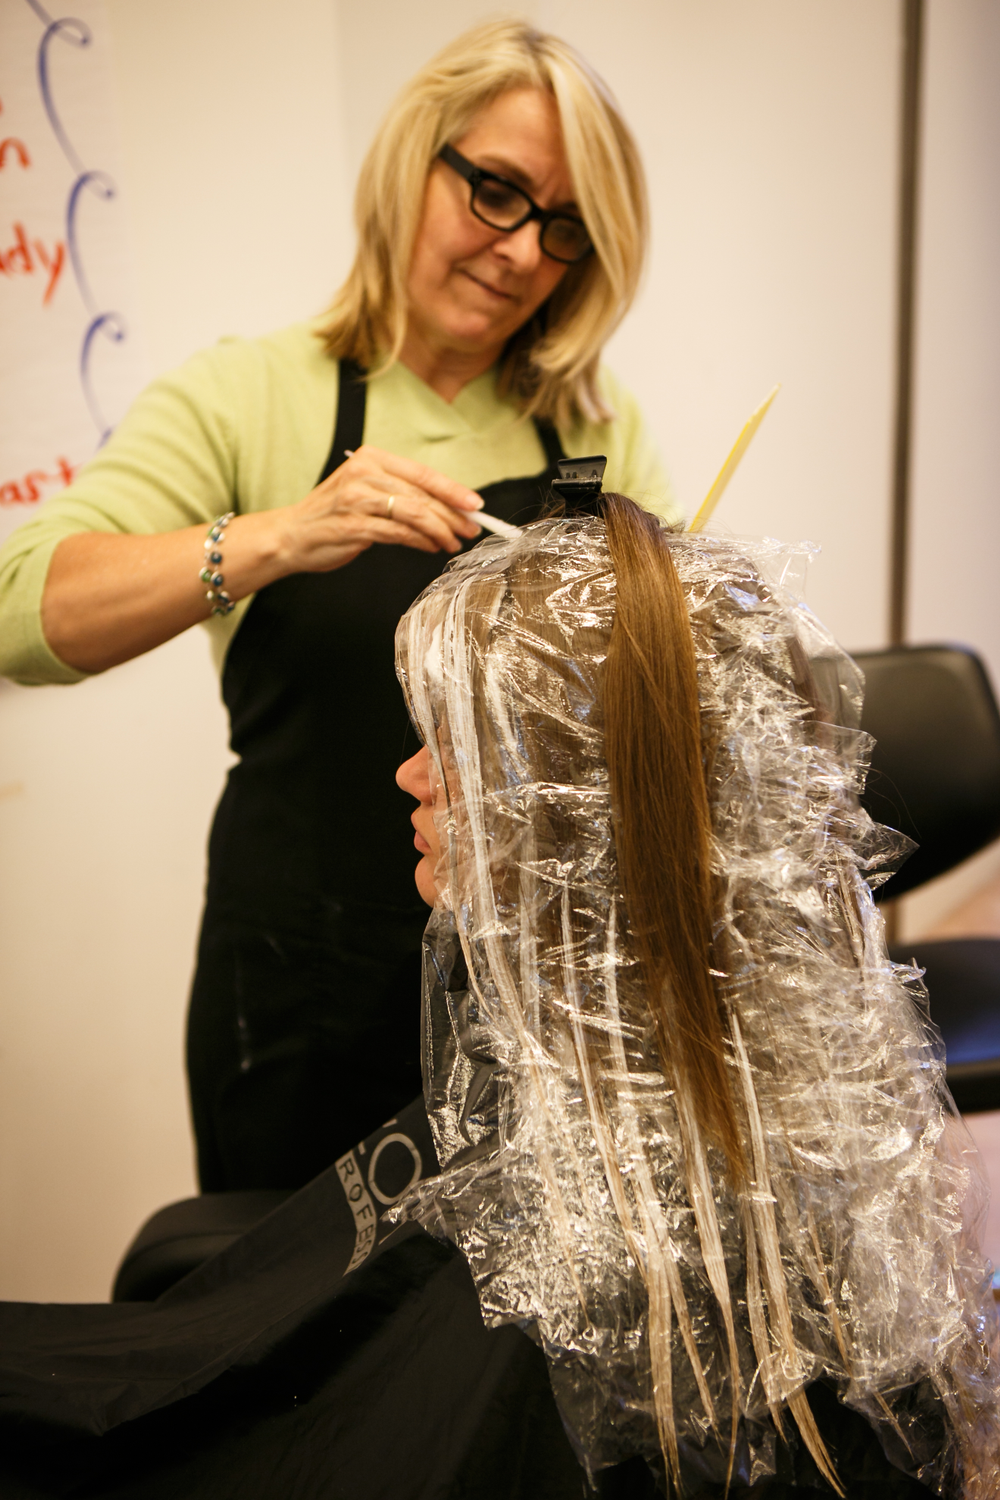 Nancy Braun, owner of Balayage by Nancy Braun Salon, a Beverly Hills hair salon, focuses on exceptional color and hair care.